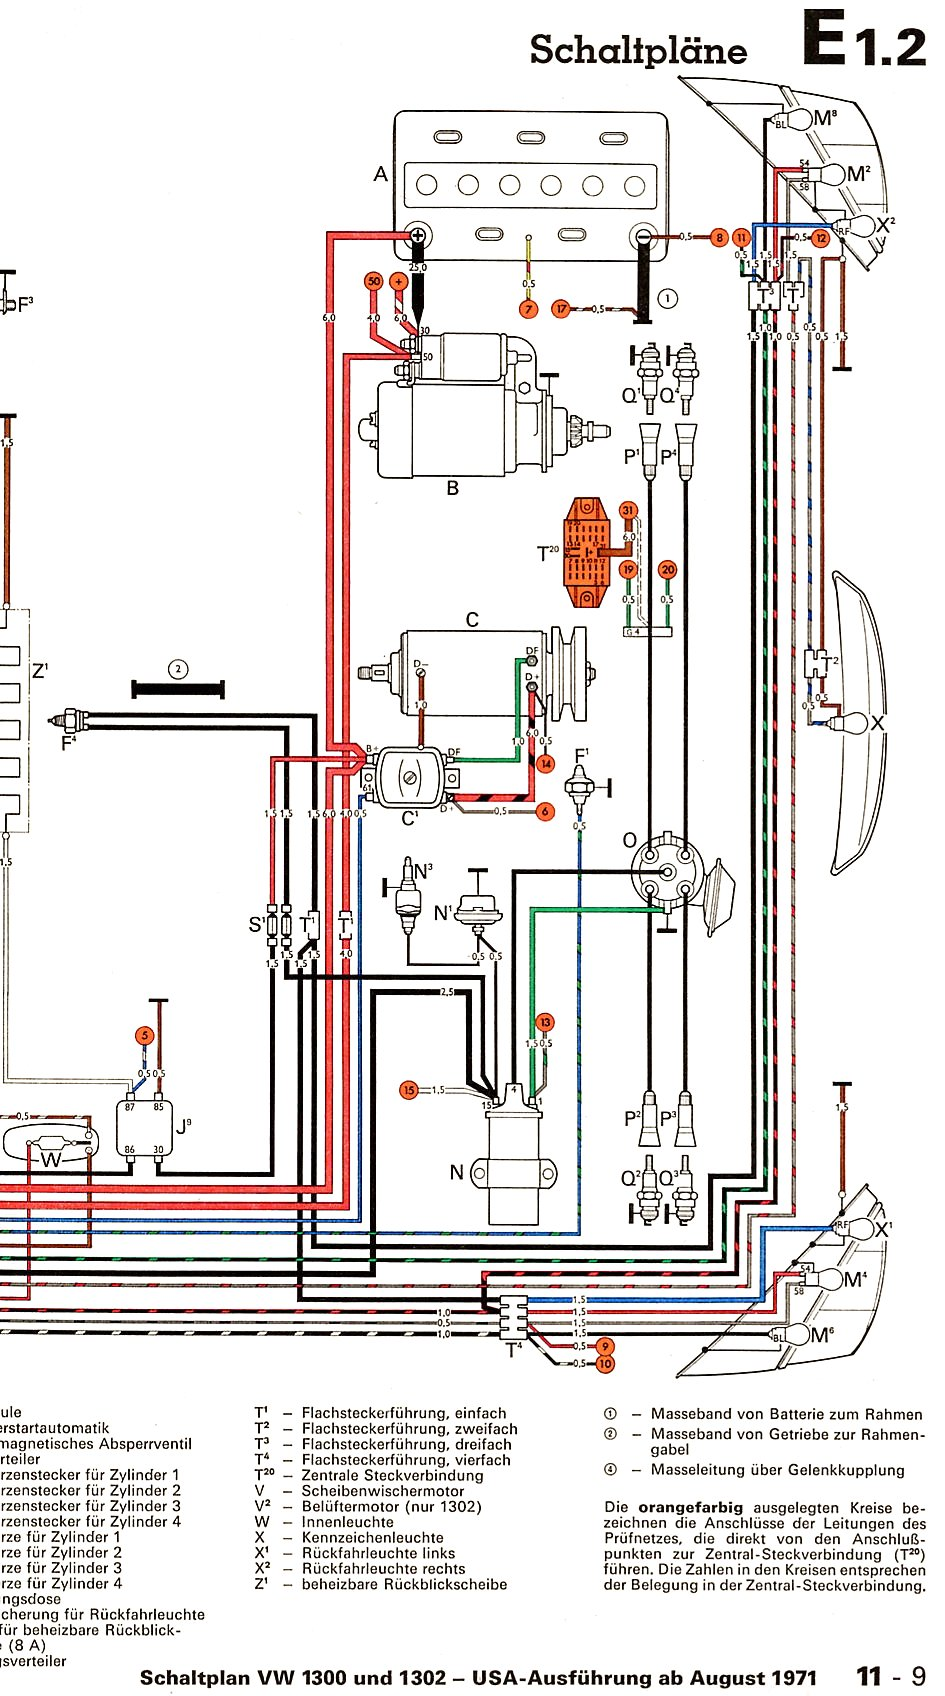 74 Beetle Fuse Box Diagram Ignition Vw 411 412 Http Vintagebuscom Wiring 1300 A 1971 2